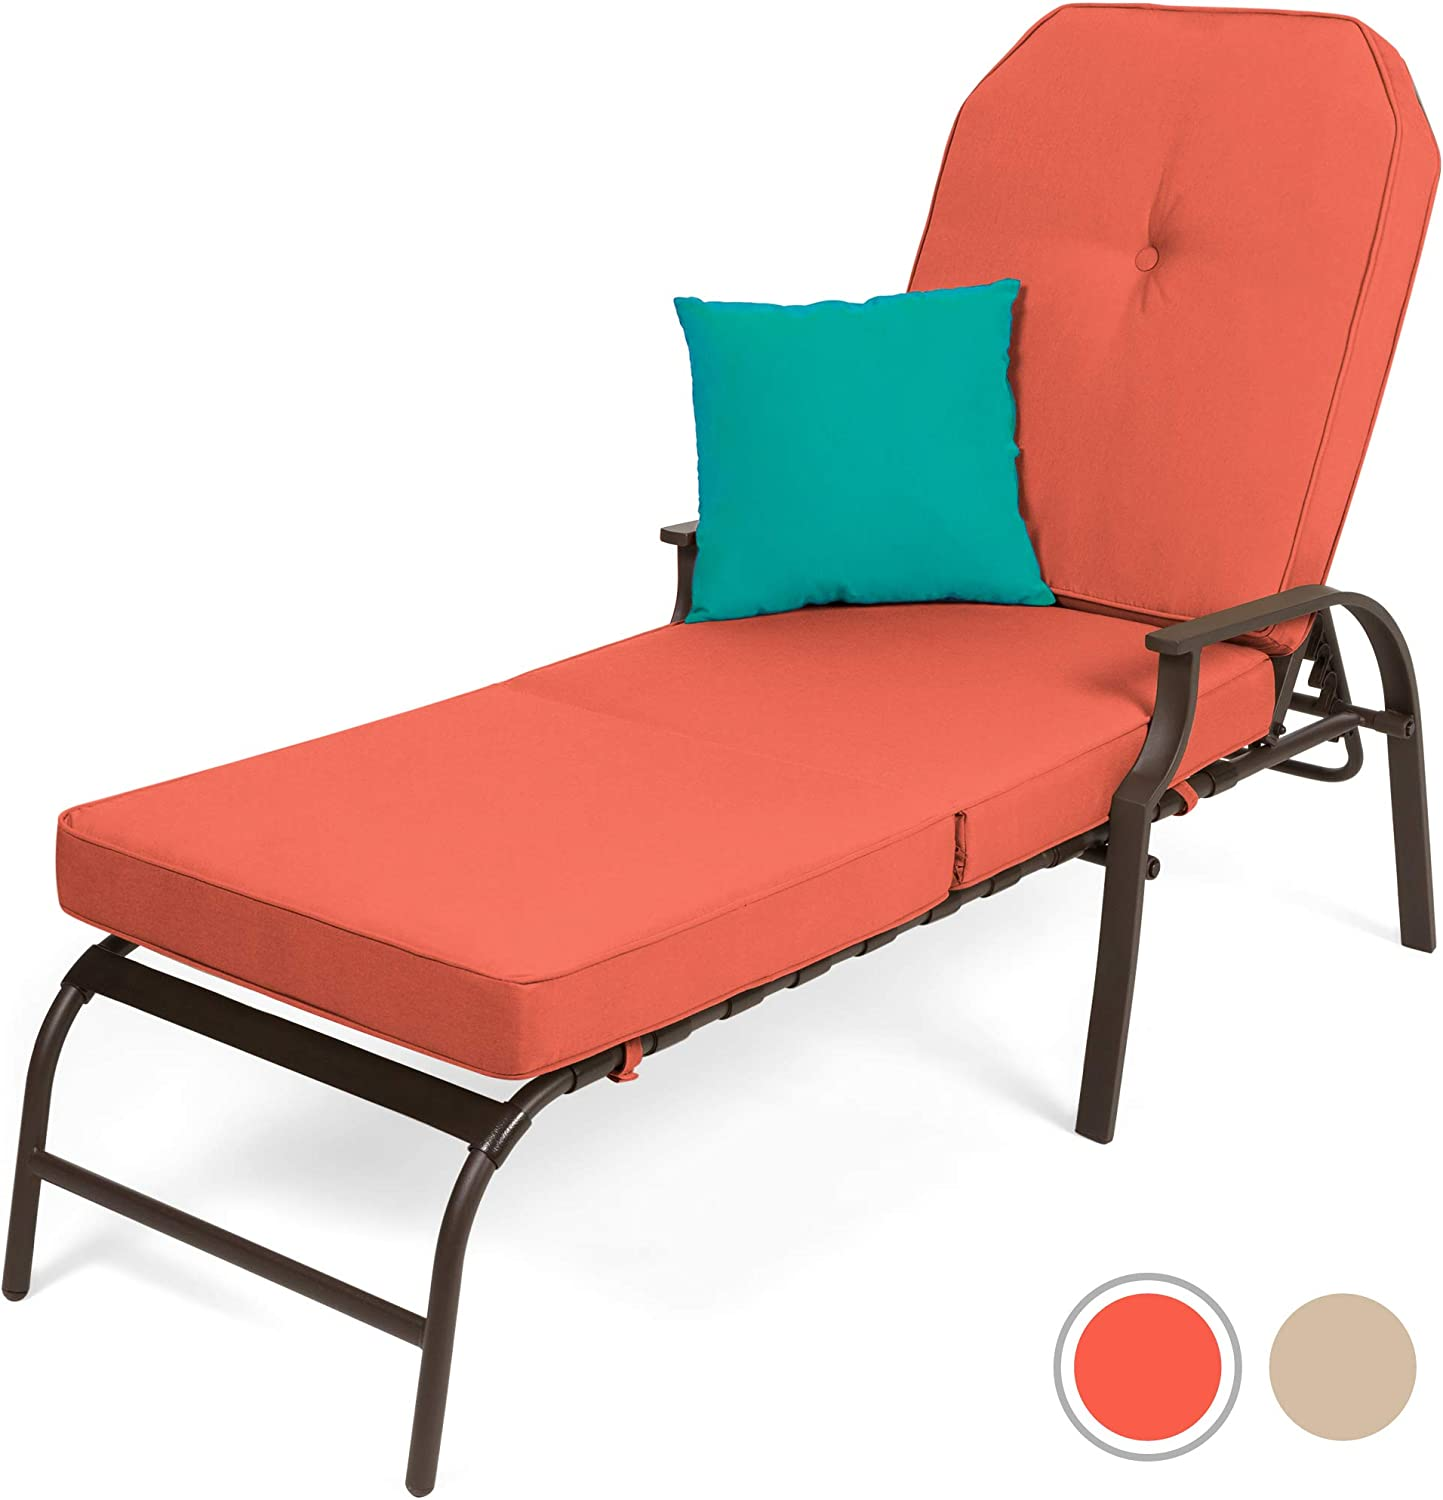 Reclining Chaise Lounge Chair